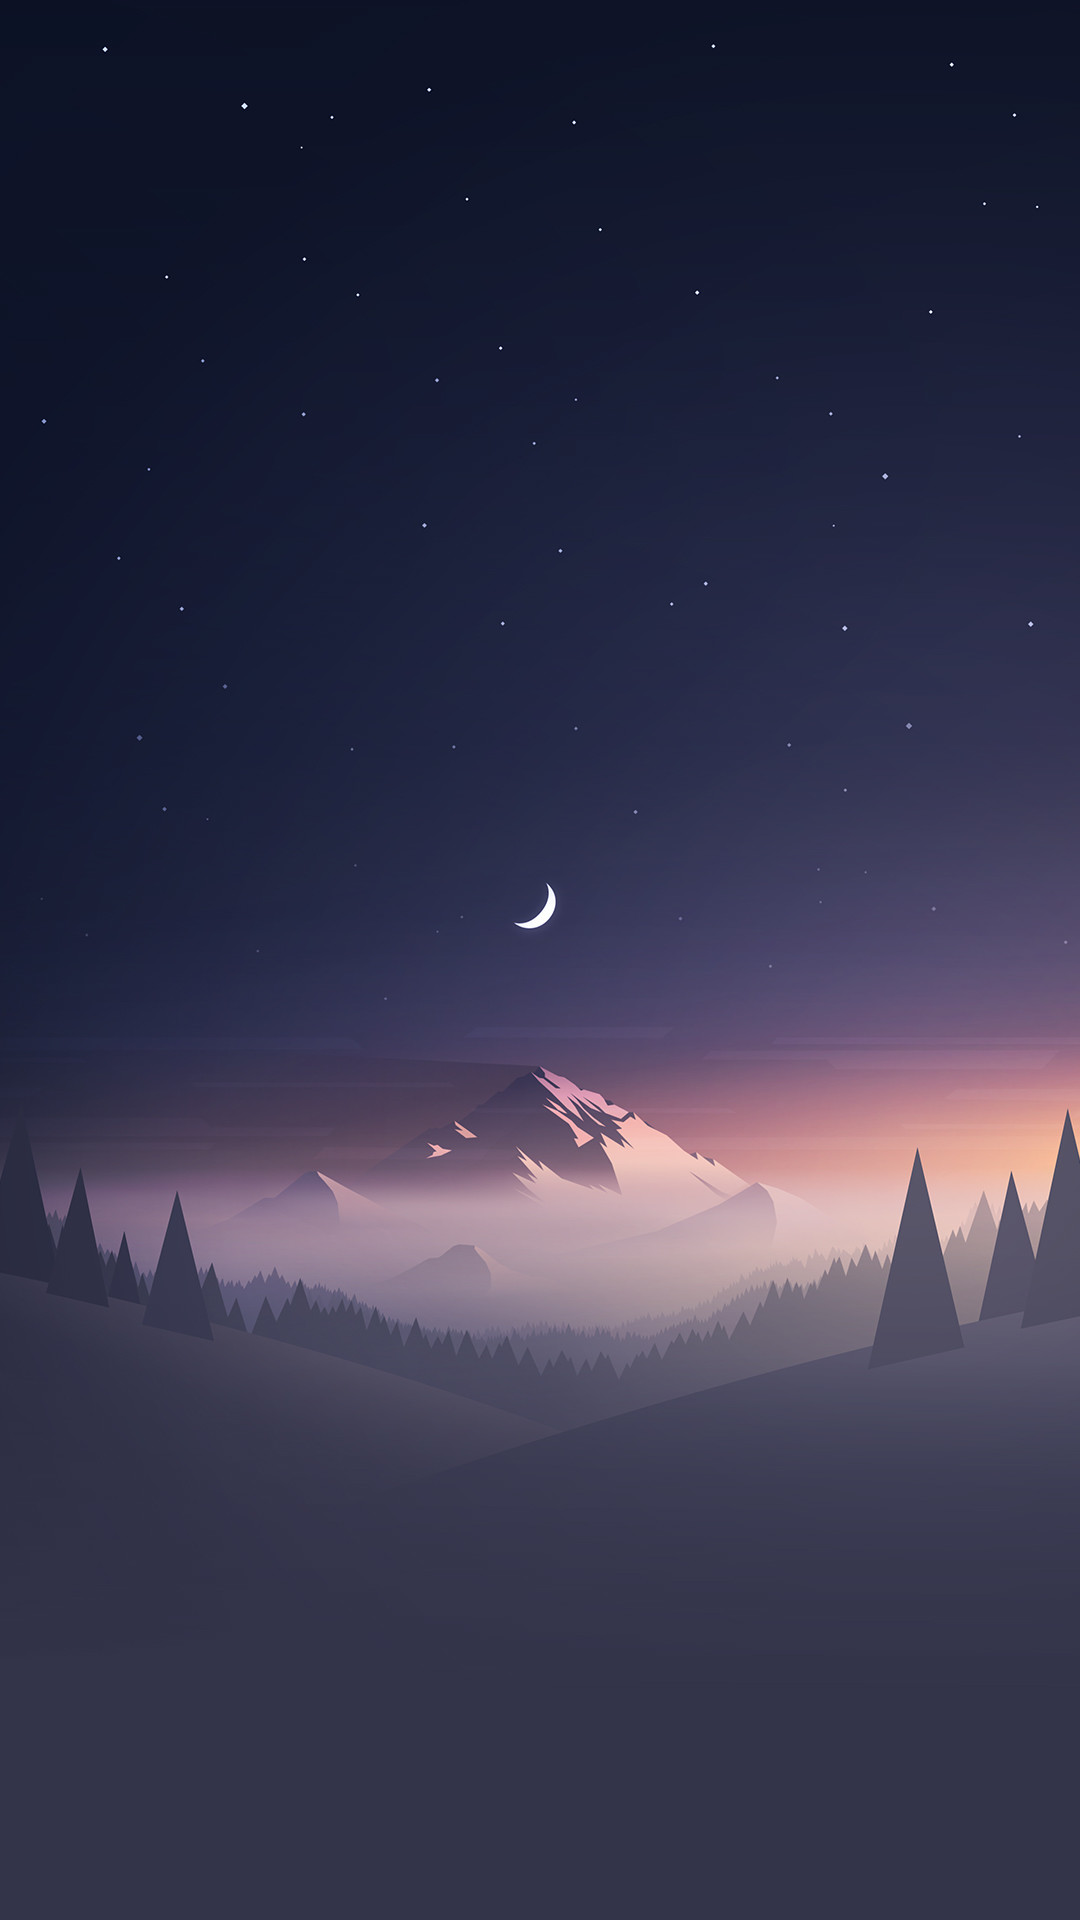 Stars And Moon Winter Mountain Landscape iPhone 6+ HD Wallpaper – https://